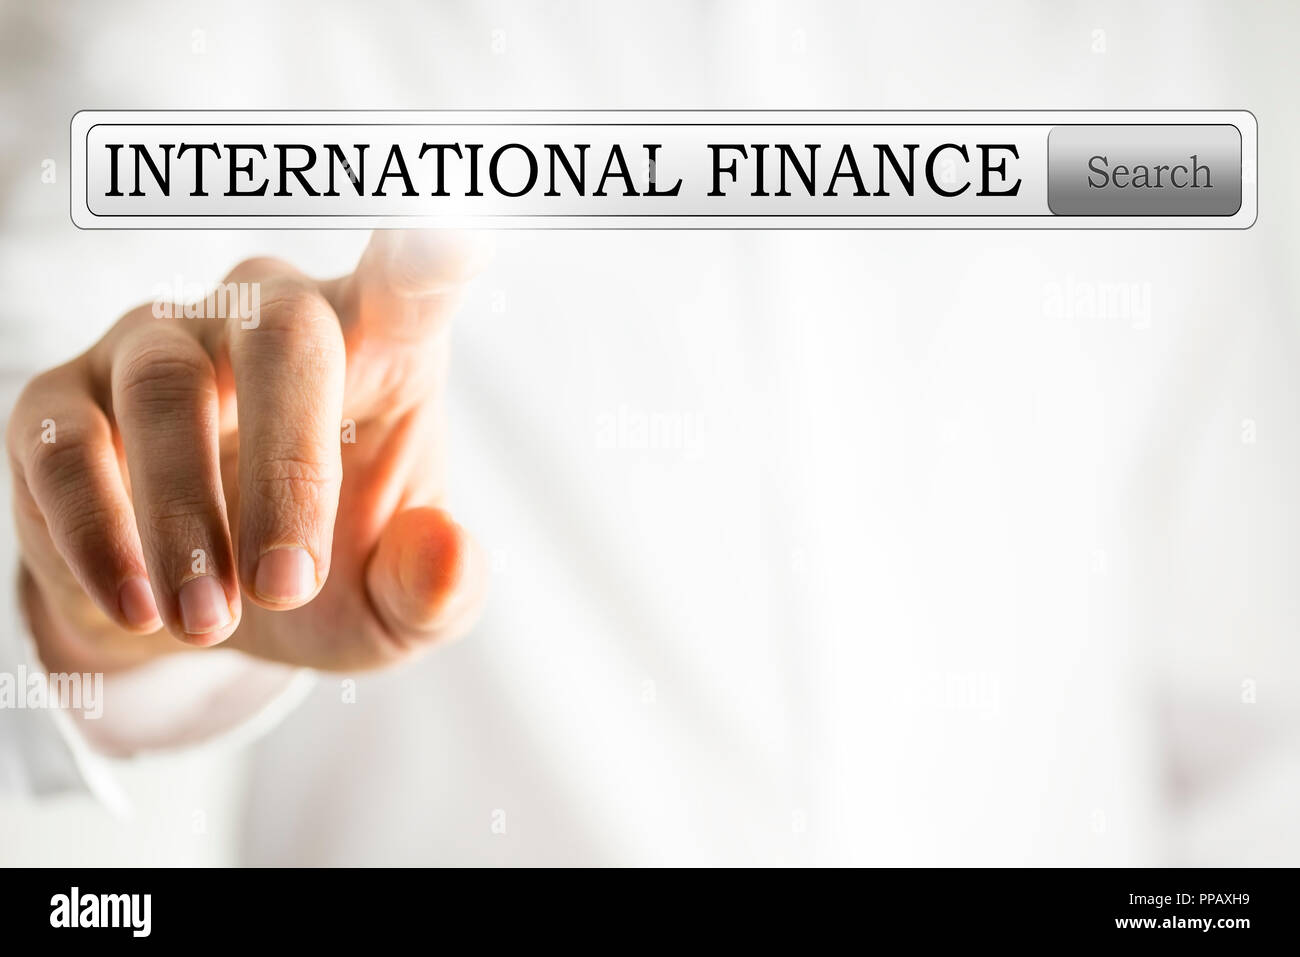 International finance in search box on virtual space. - Stock Image